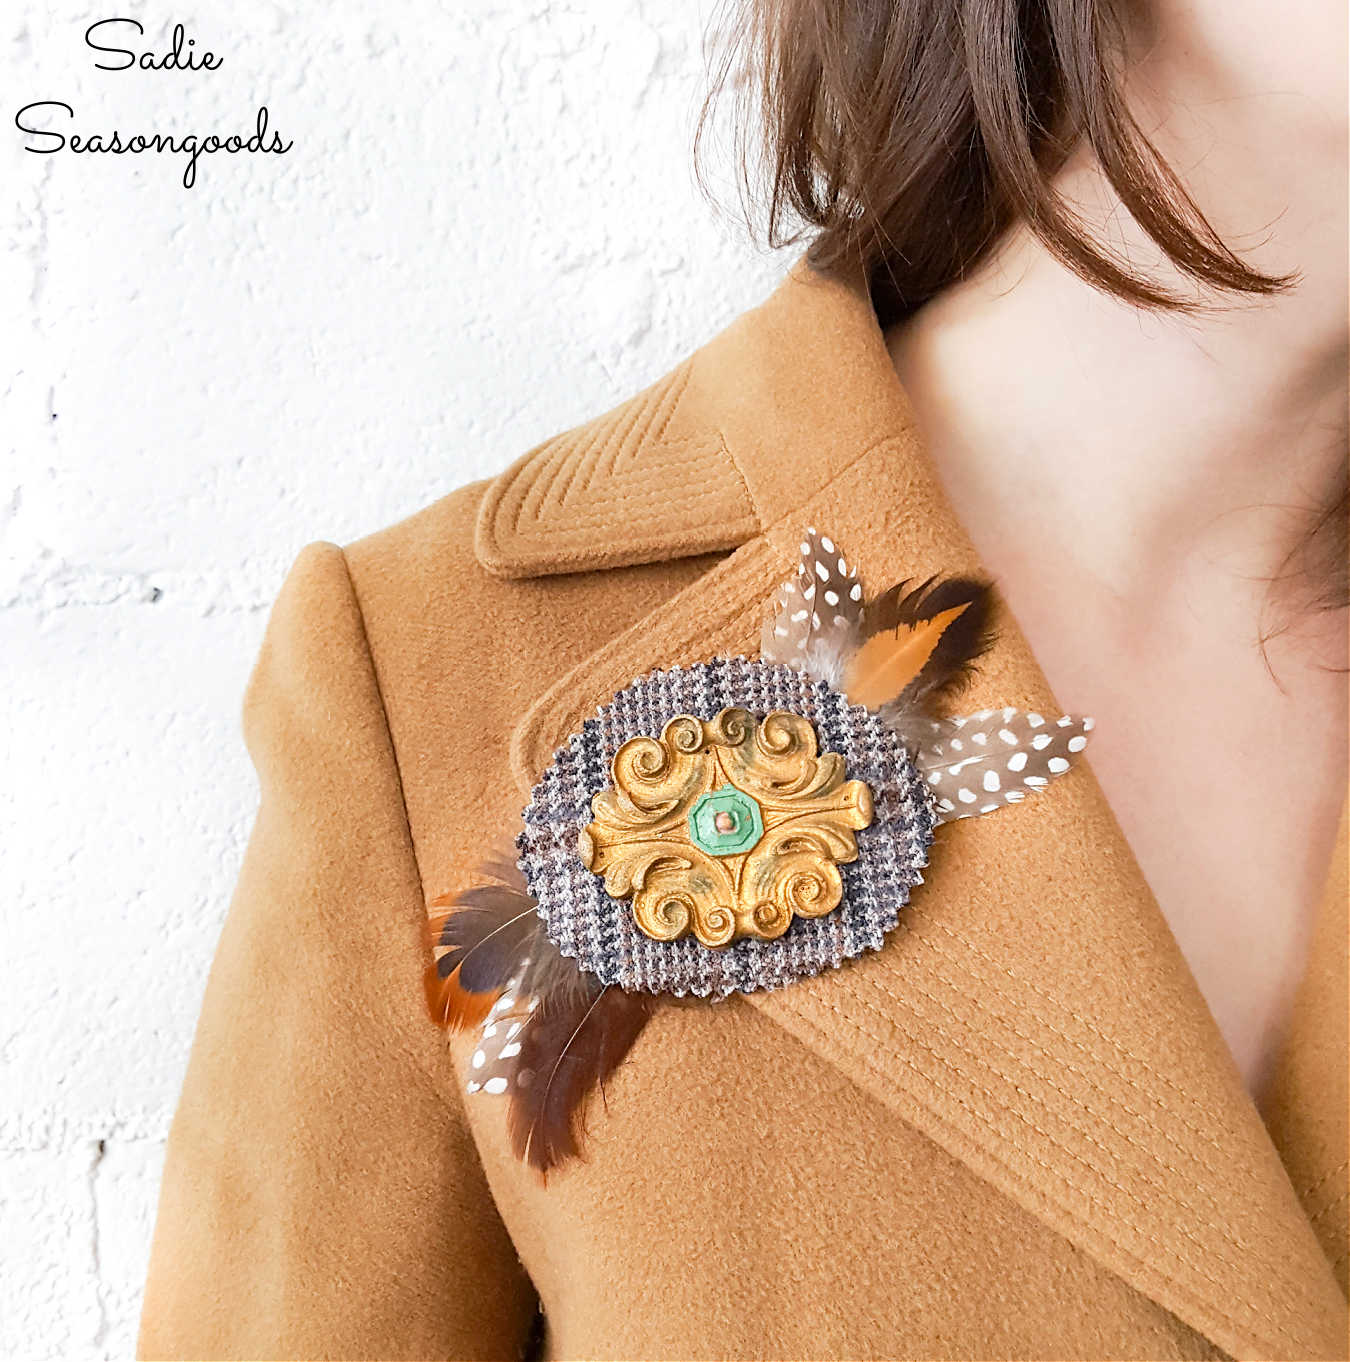 Jacket Pins from Wood Medallions and Tweed